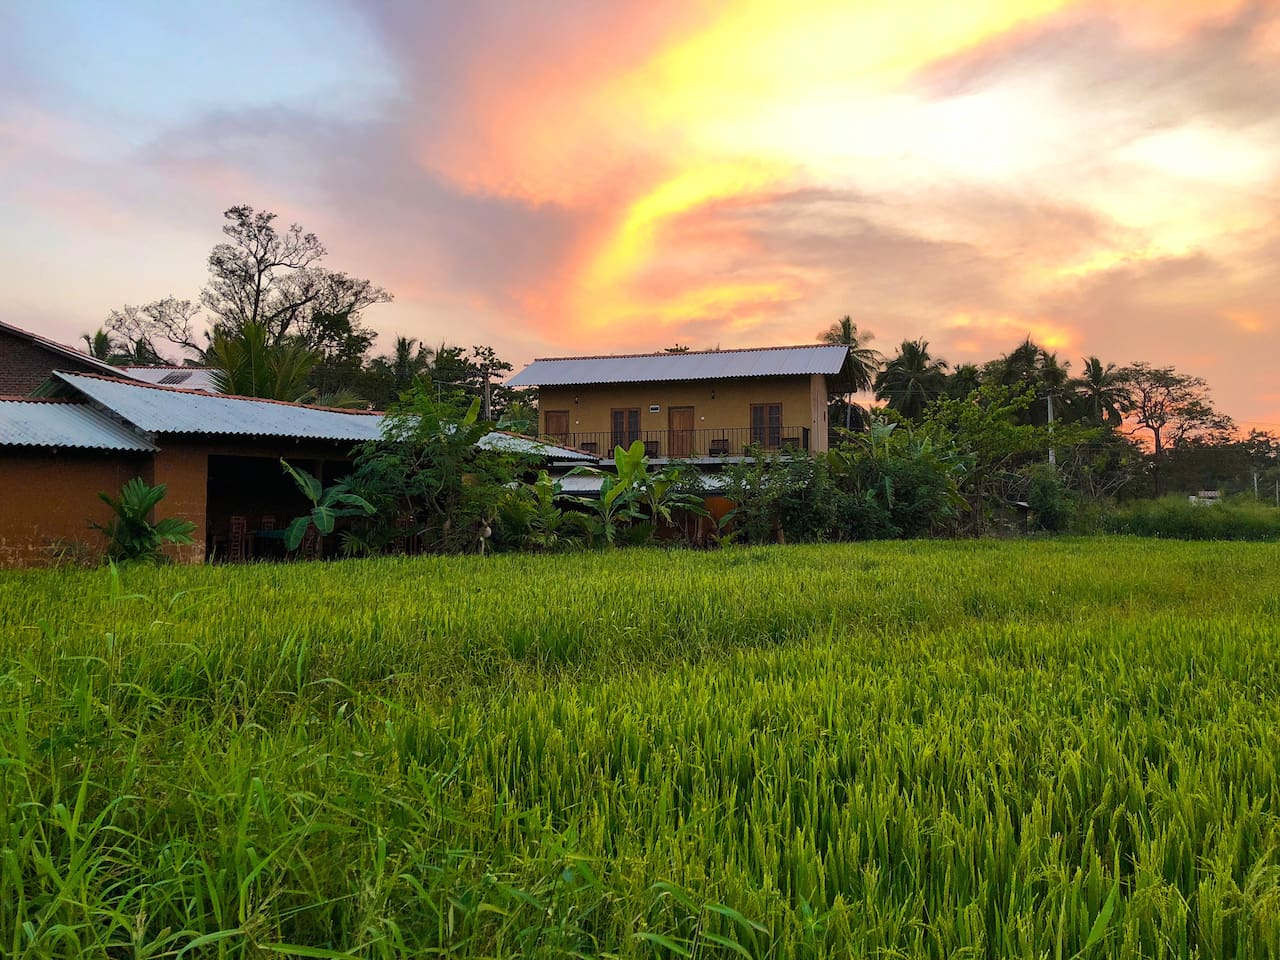 Perched on the edge of the rice paddies, our guesthouse is a perfect place to relax